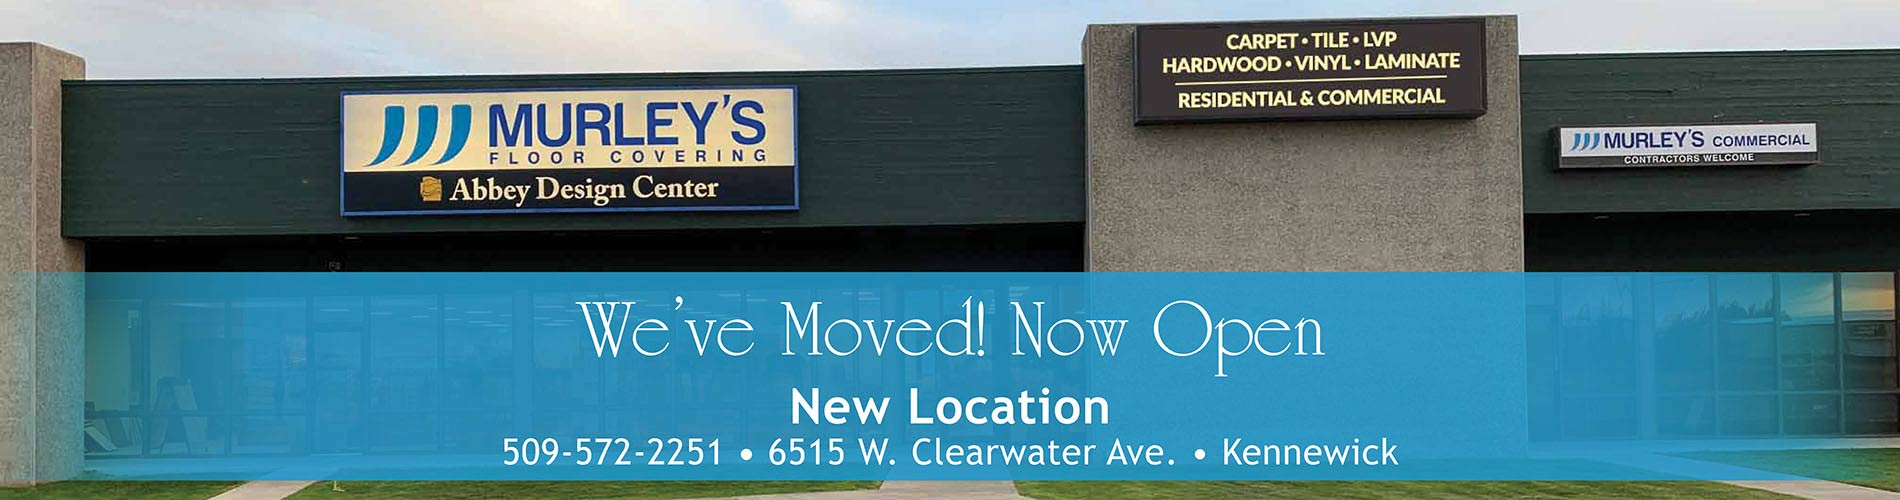 Murley's Floor Covering has relocated and is now open! New location: 6515 W. Clearwater Ave. Kennewick, WA